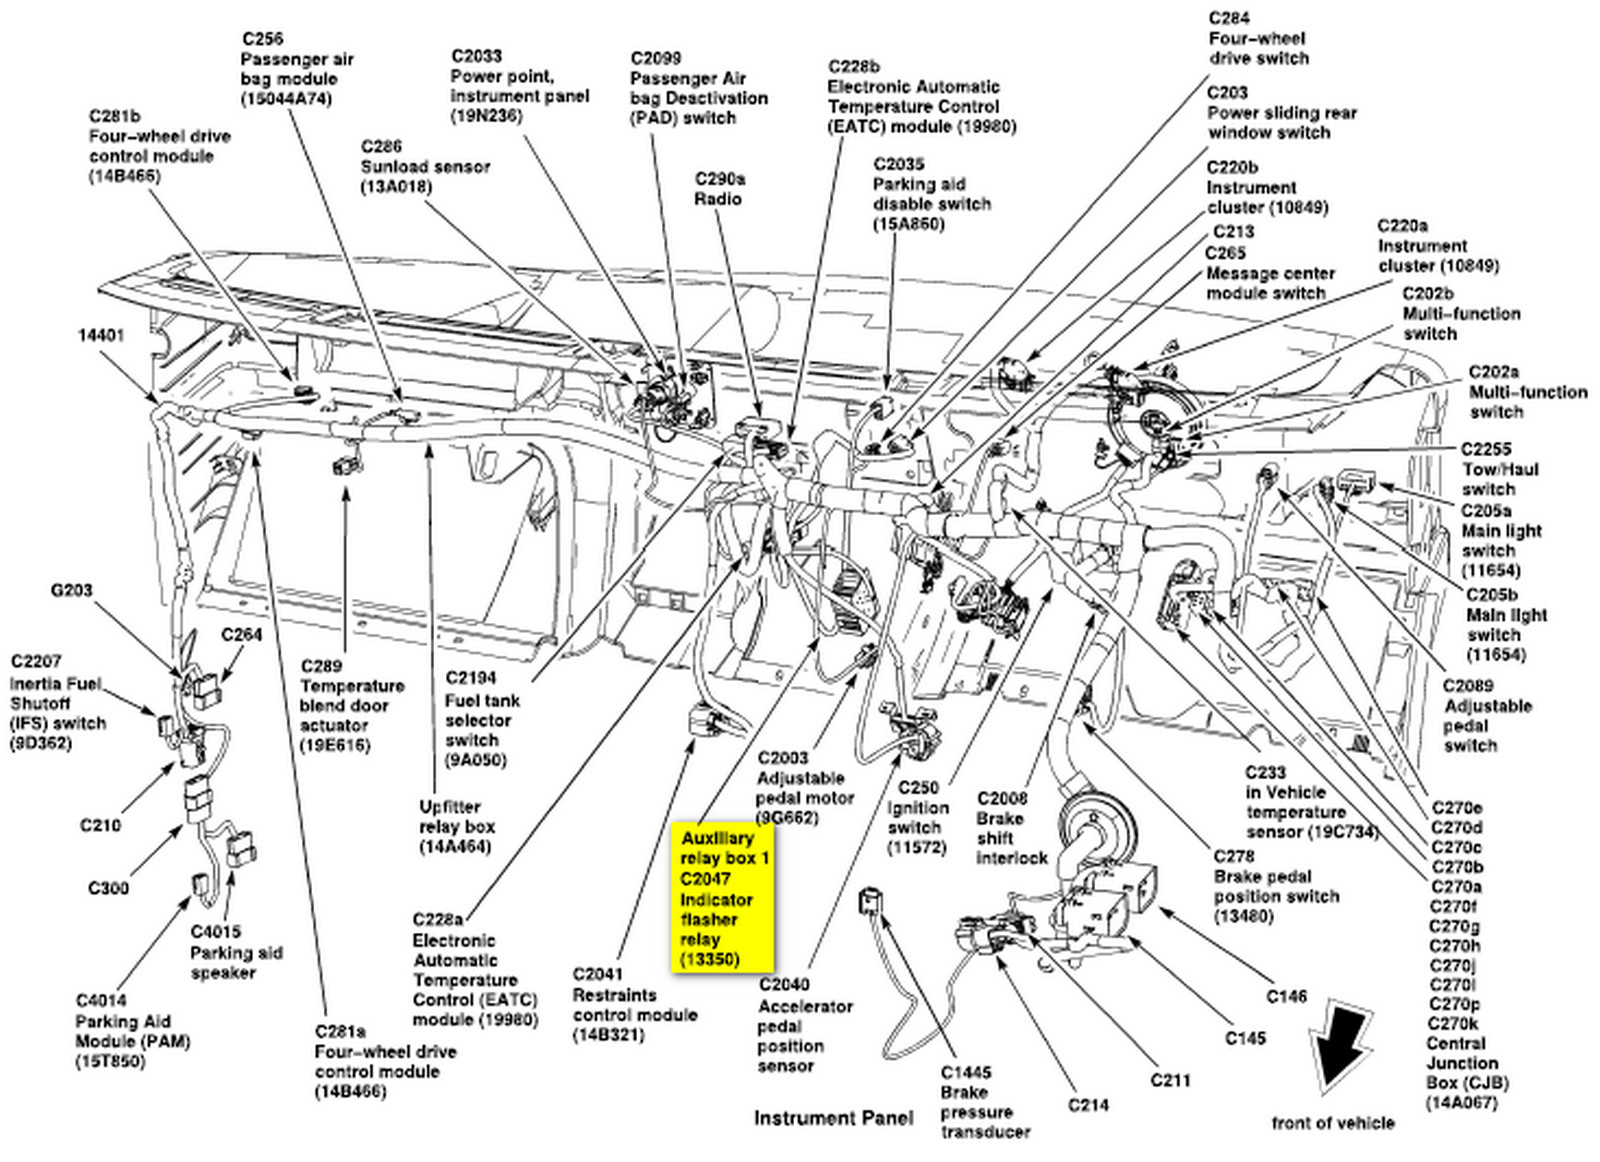 Ford F350 Fuse Box Diagram further 2003 Ford Escape Engine Diagram ...